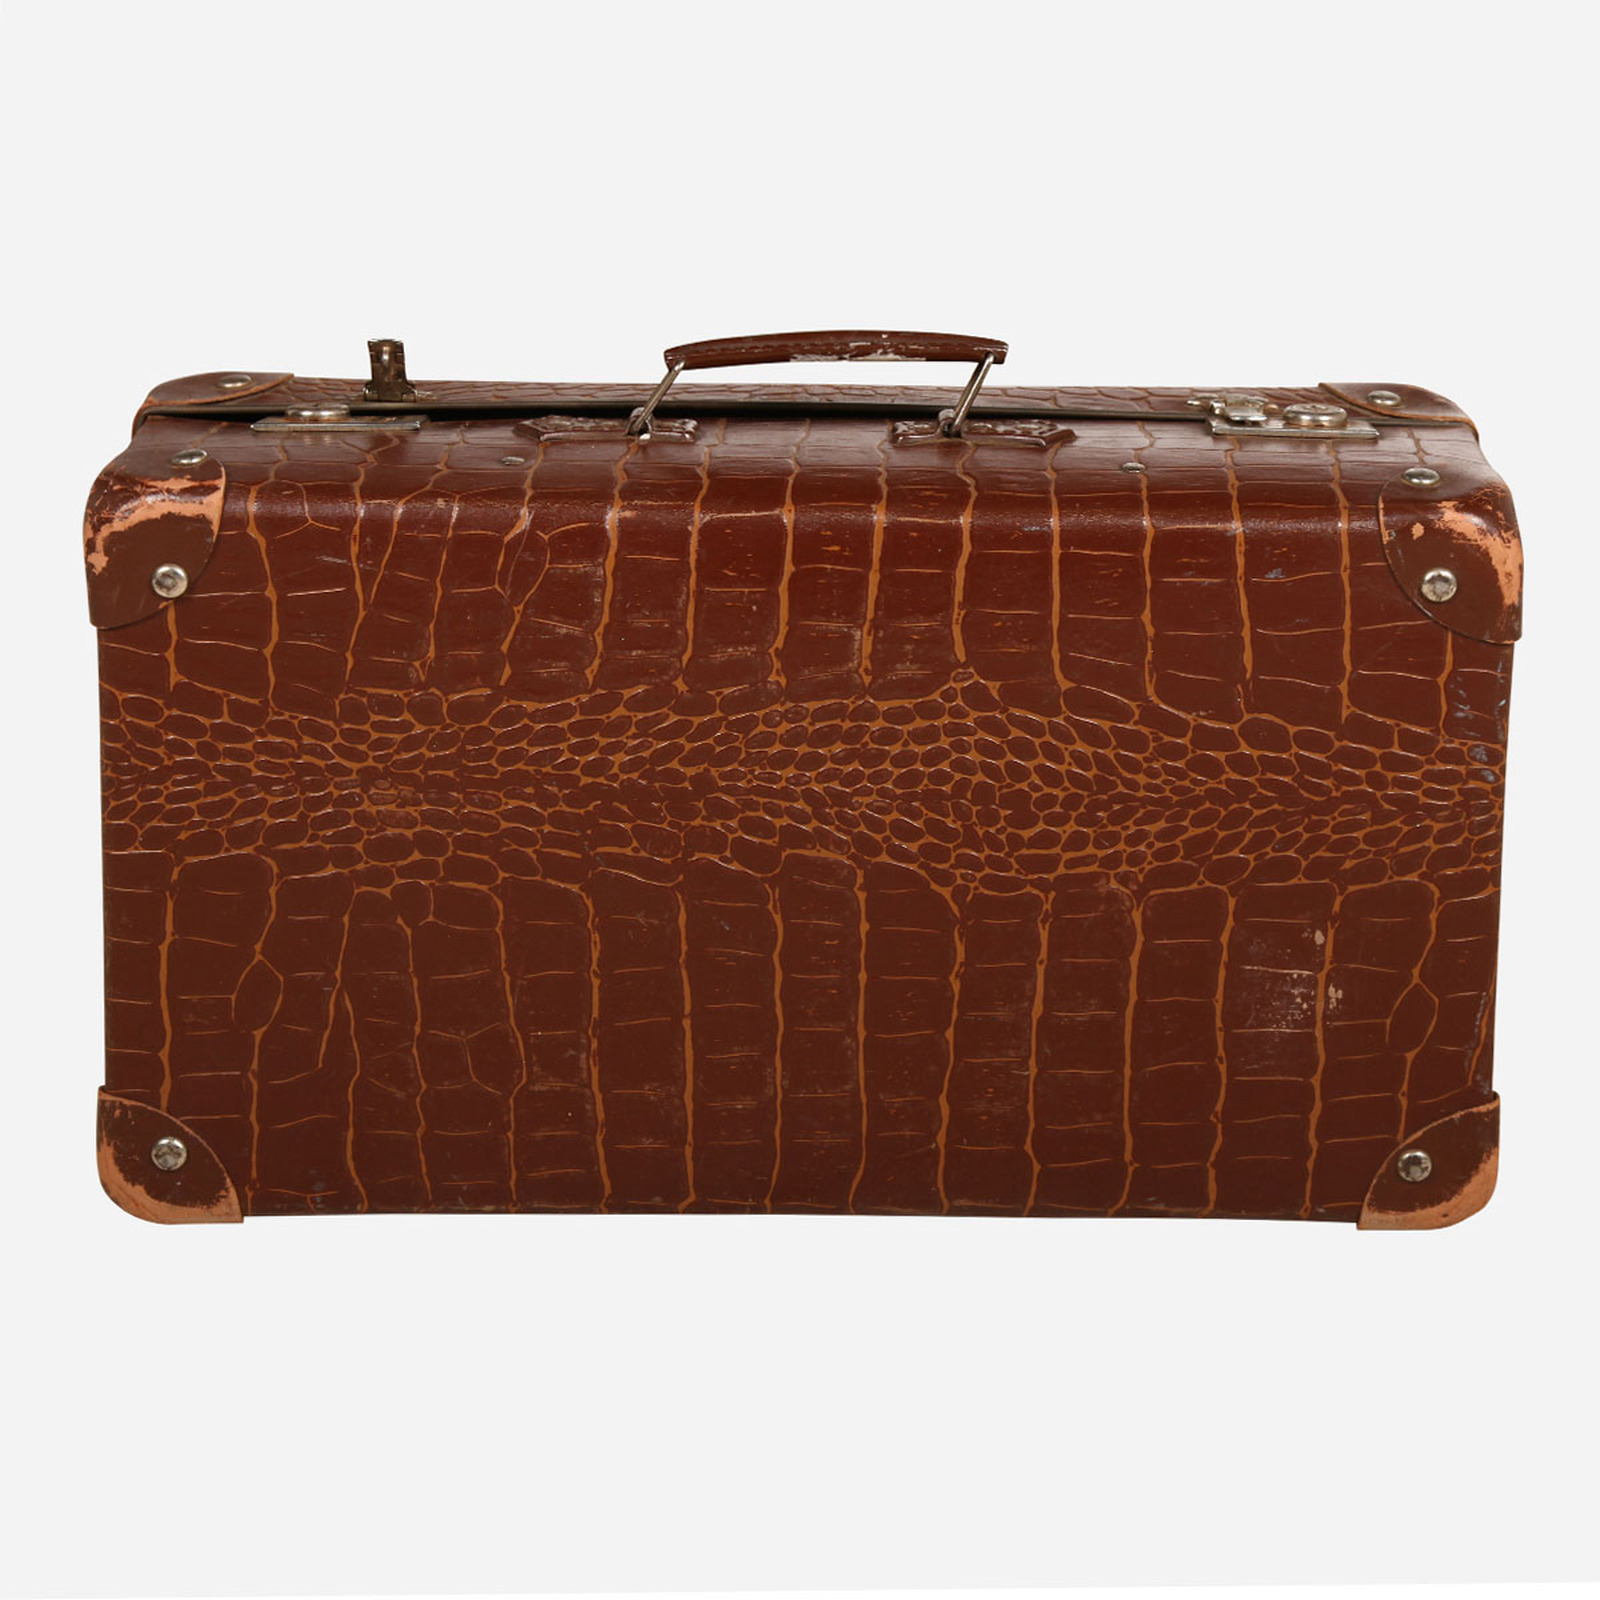 Vintage Suitcase, Alligator